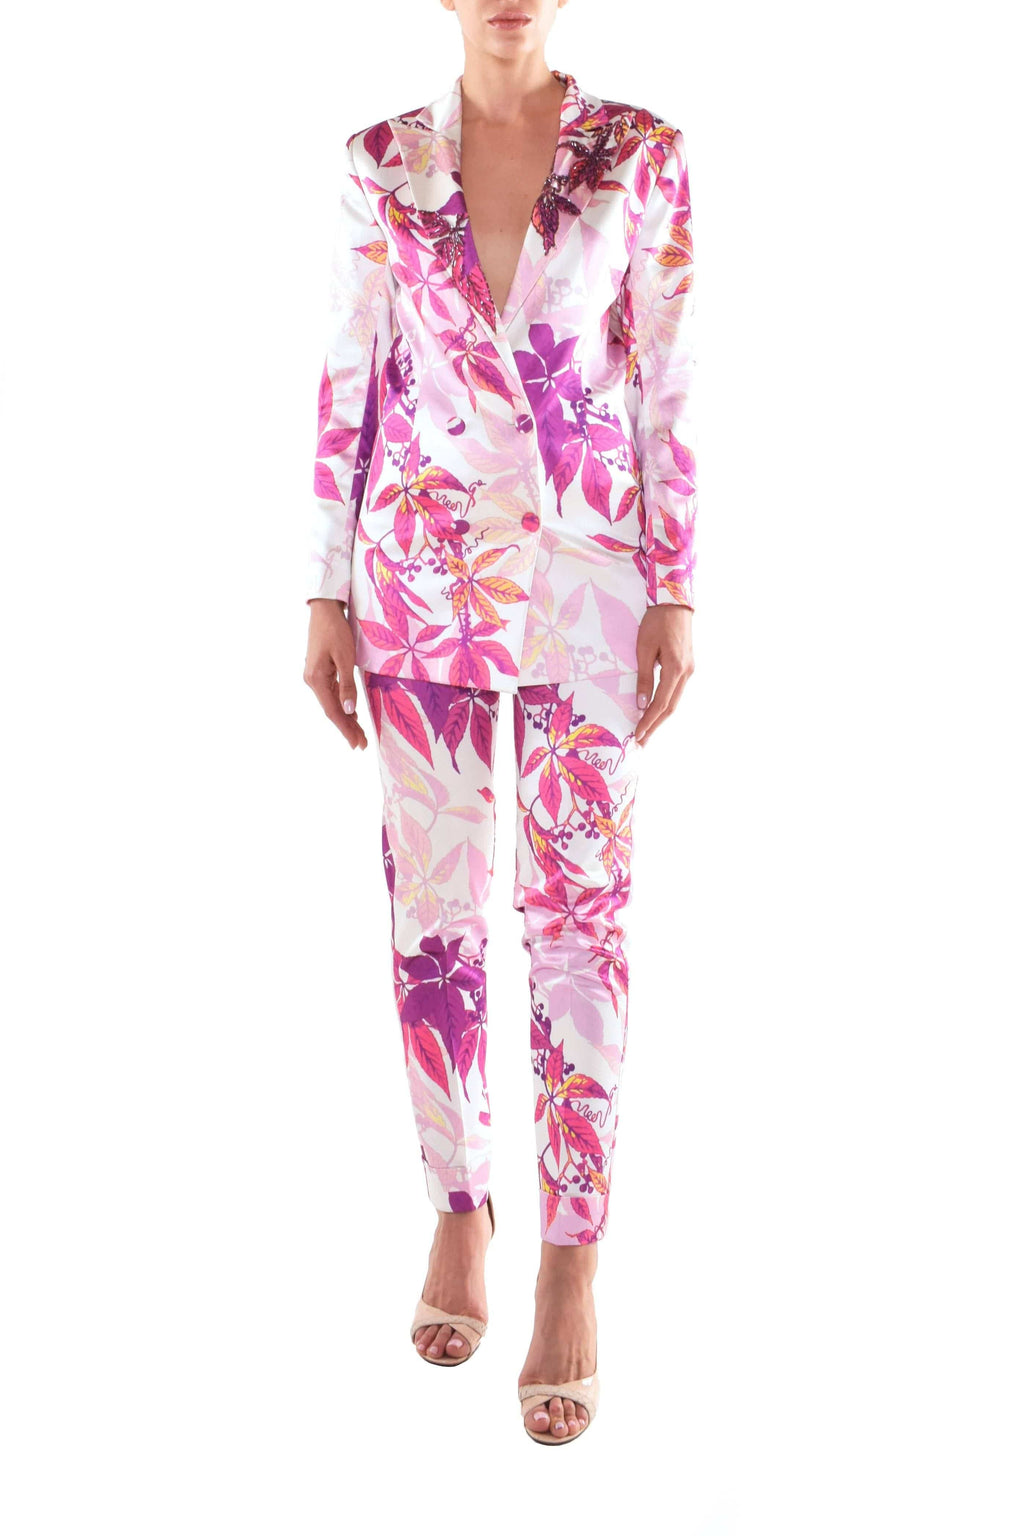 Floral Satin Suit - BYTRIBUTE